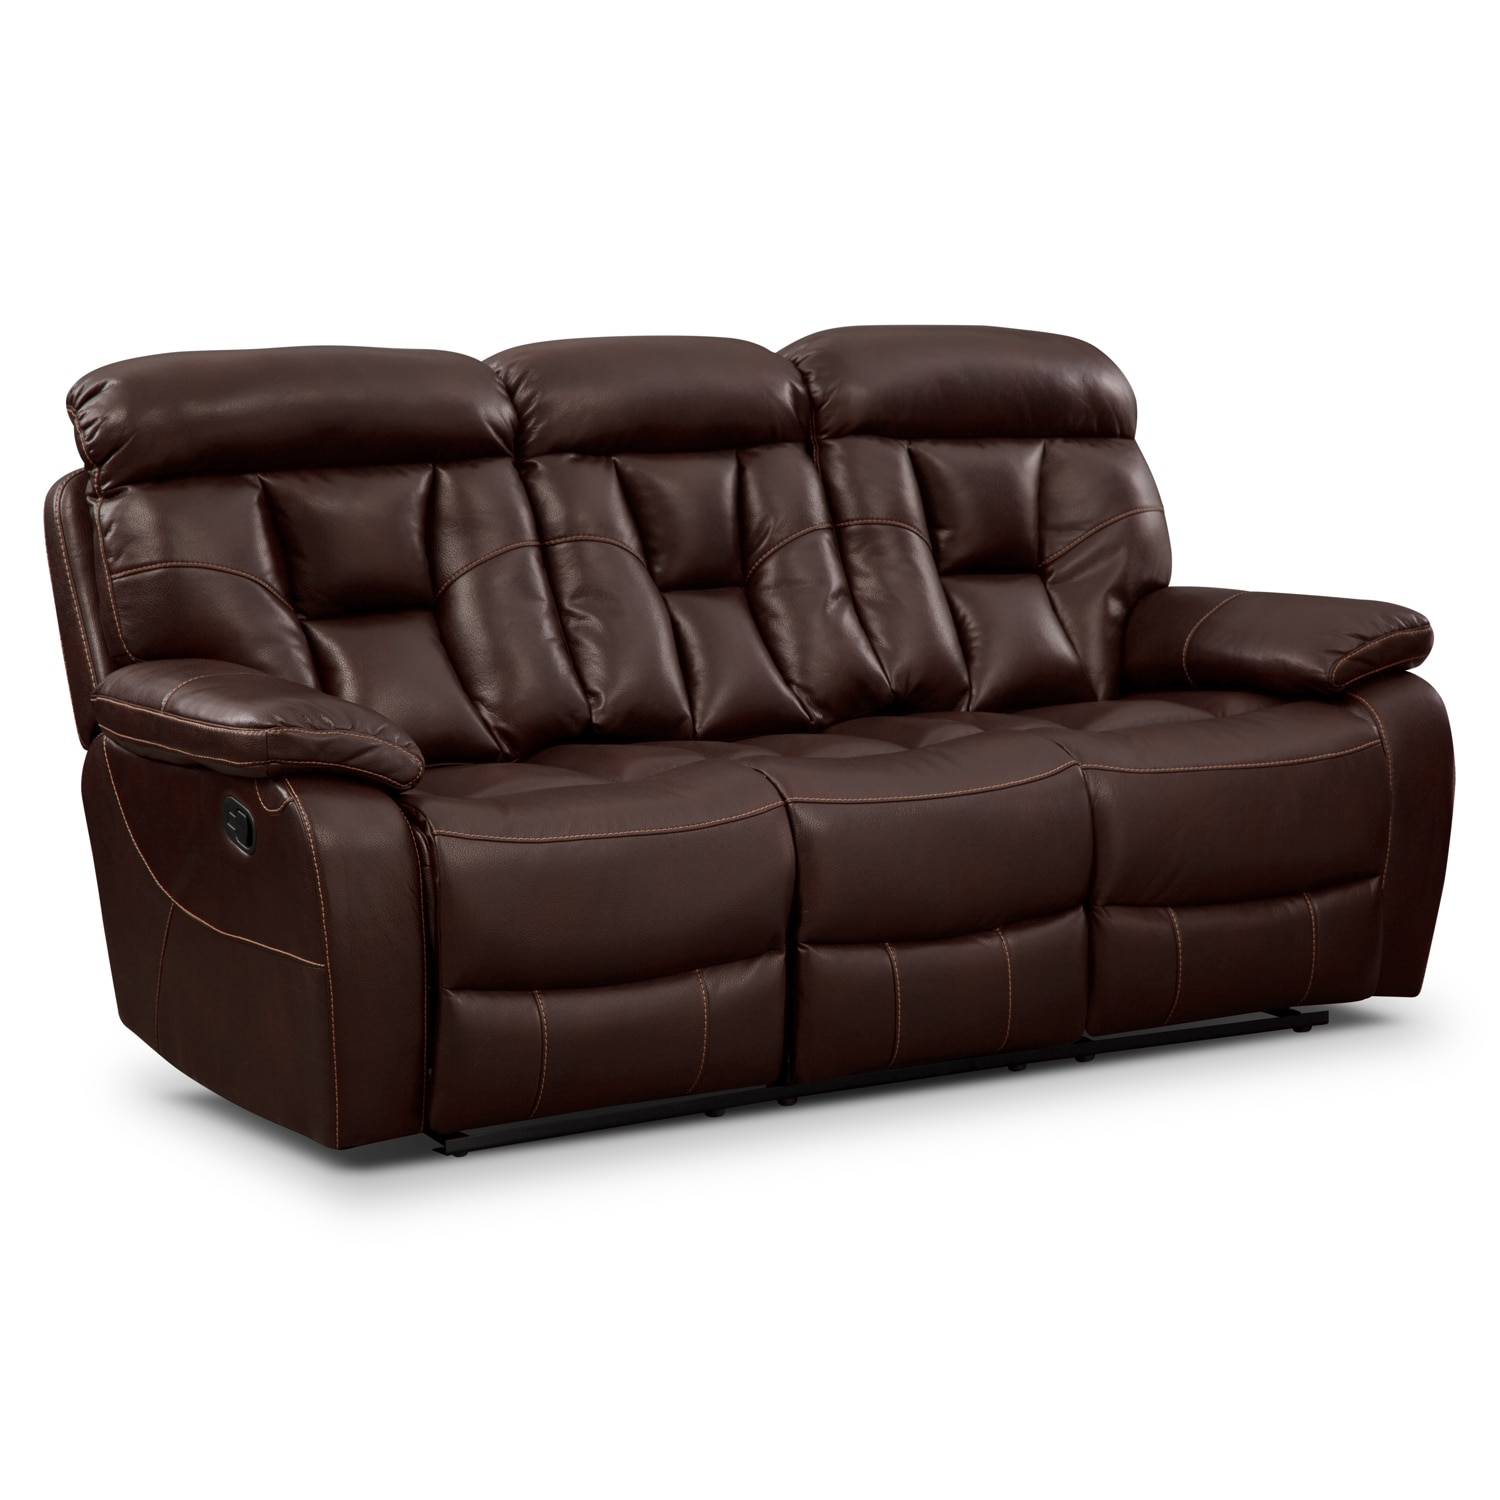 Best Shop For Leather Sofas